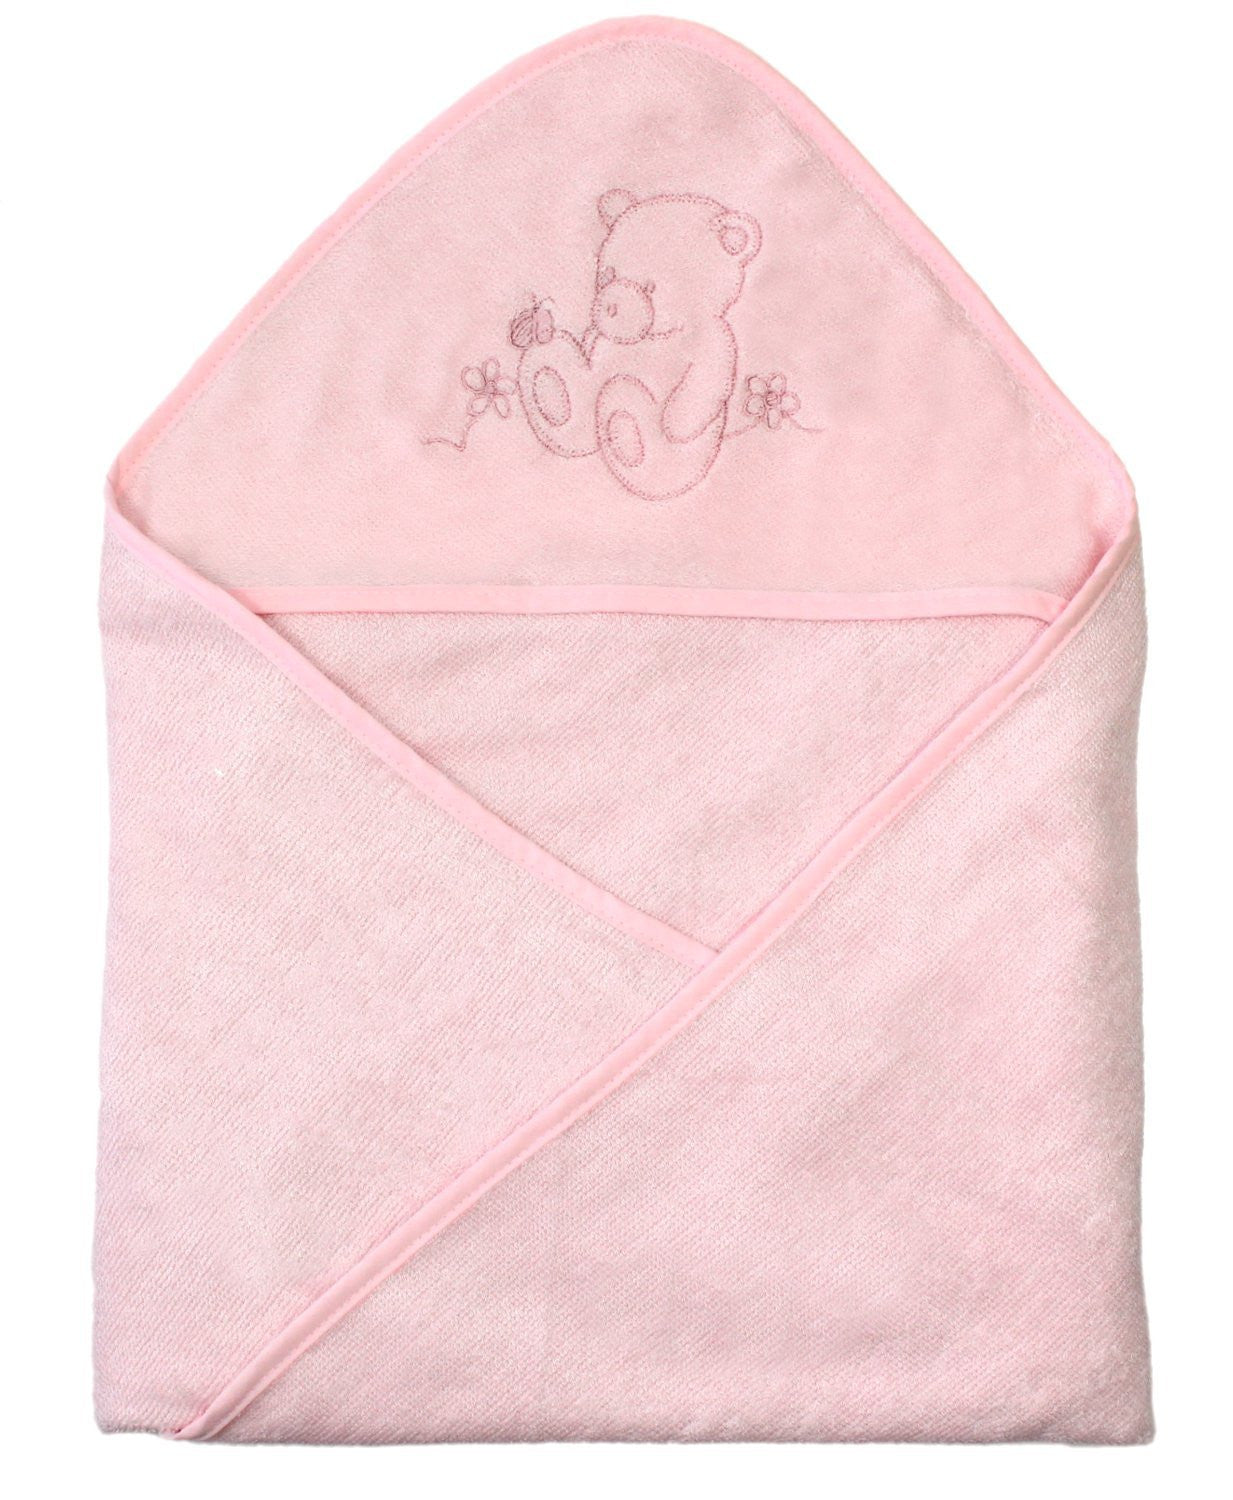 LITTLE BEAR Organic Bamboo Hooded Towel Wrap